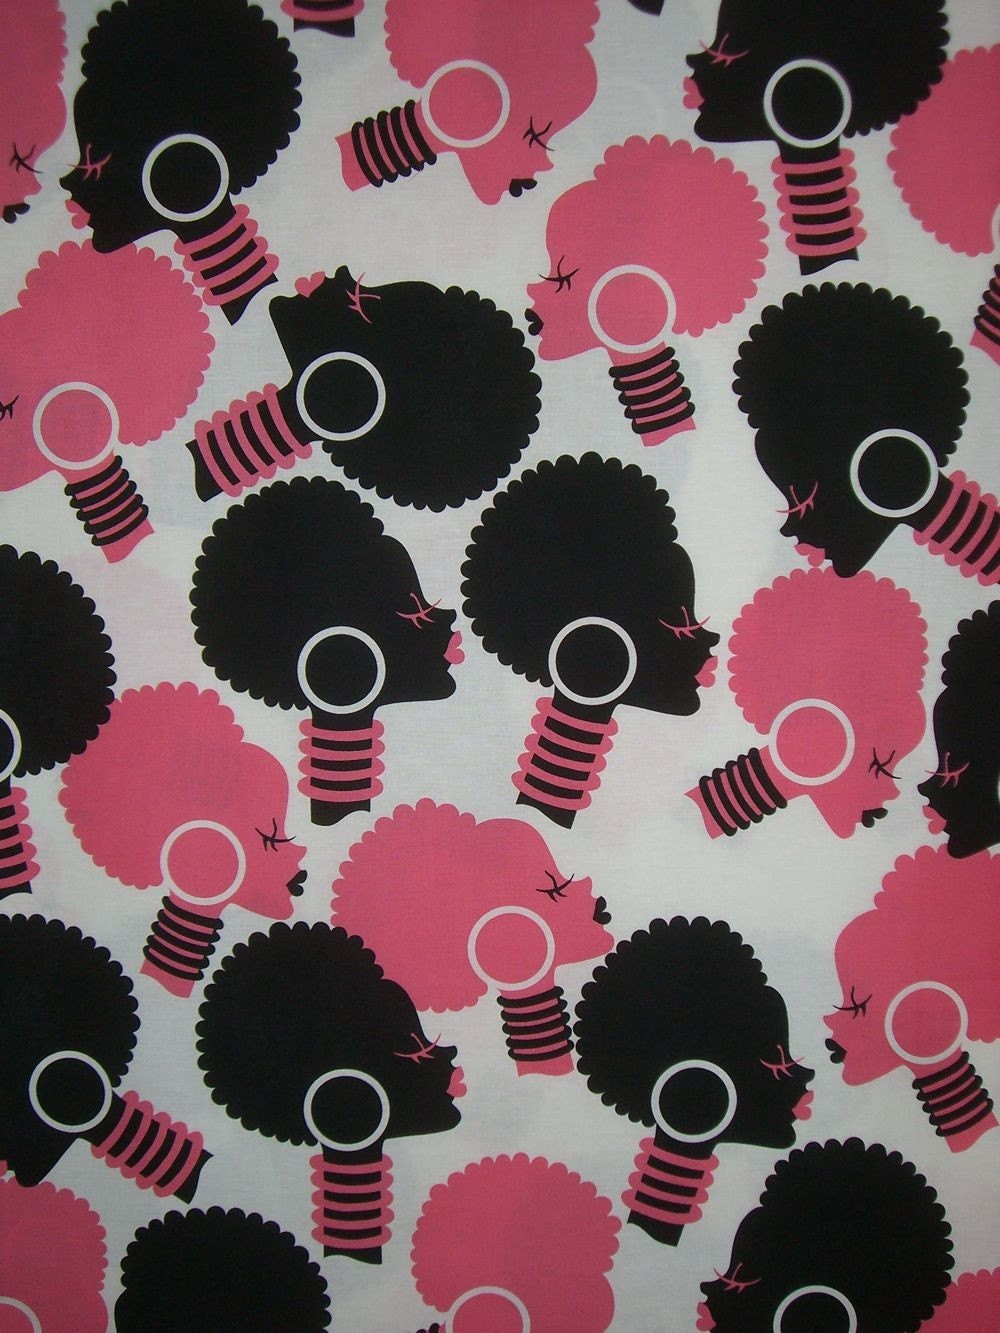 Elegant Afro Women Silhouette Print Fabric In Pink And